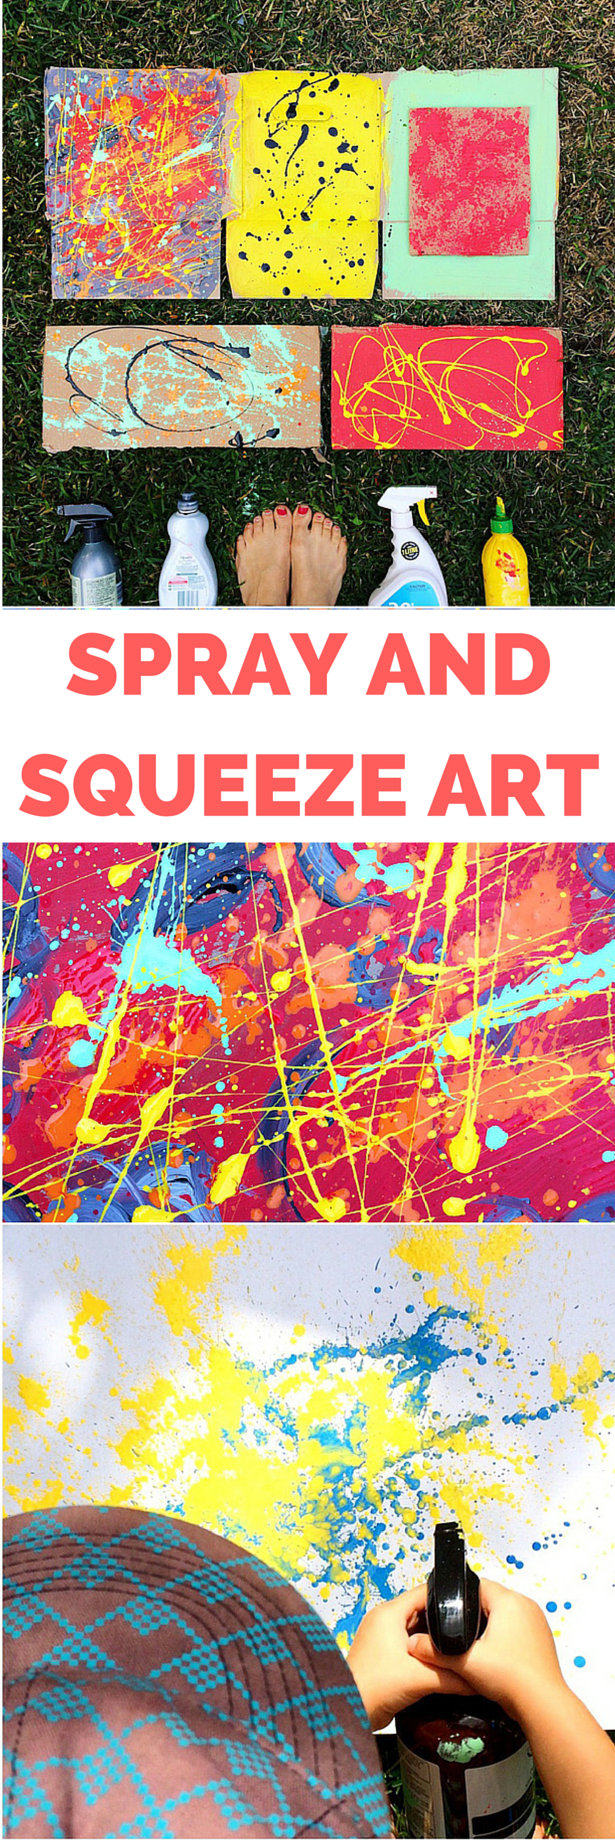 RECYCLED SPRAY AND SQUEEZE ART PAINTING #spraypainting